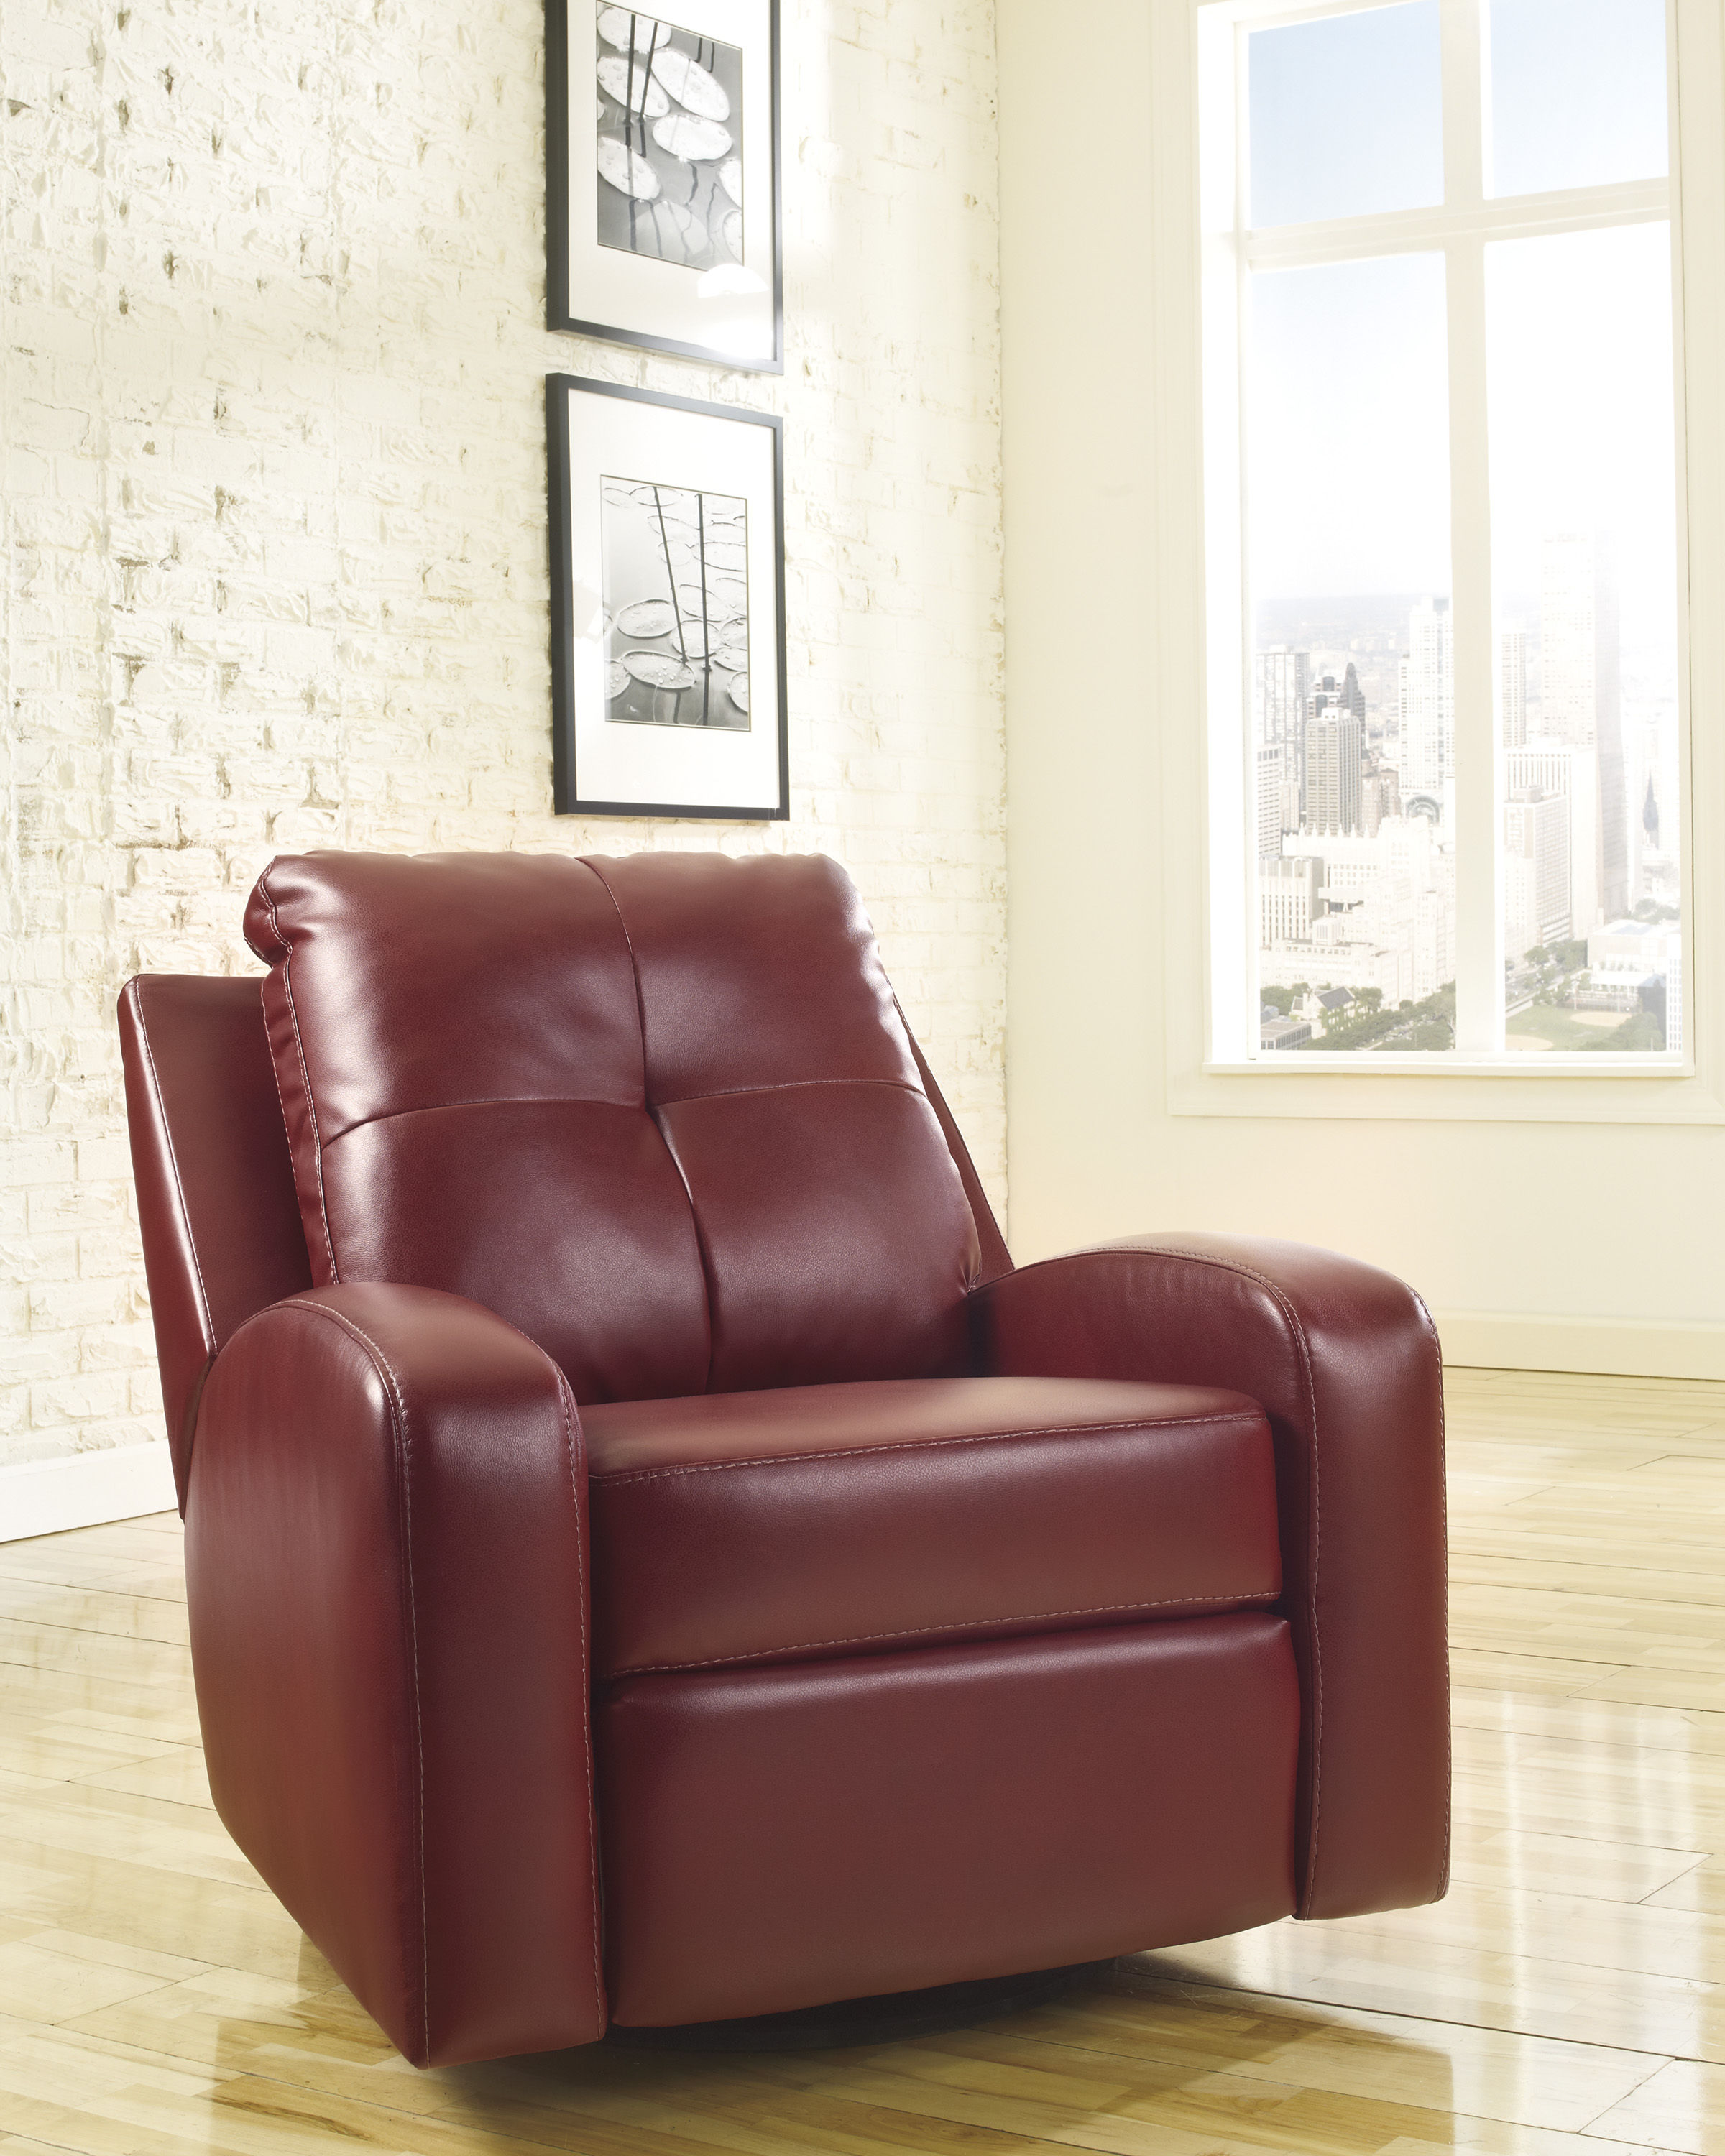 Ashley furniture mannix durablend red swivel glider recliner click to enlarge